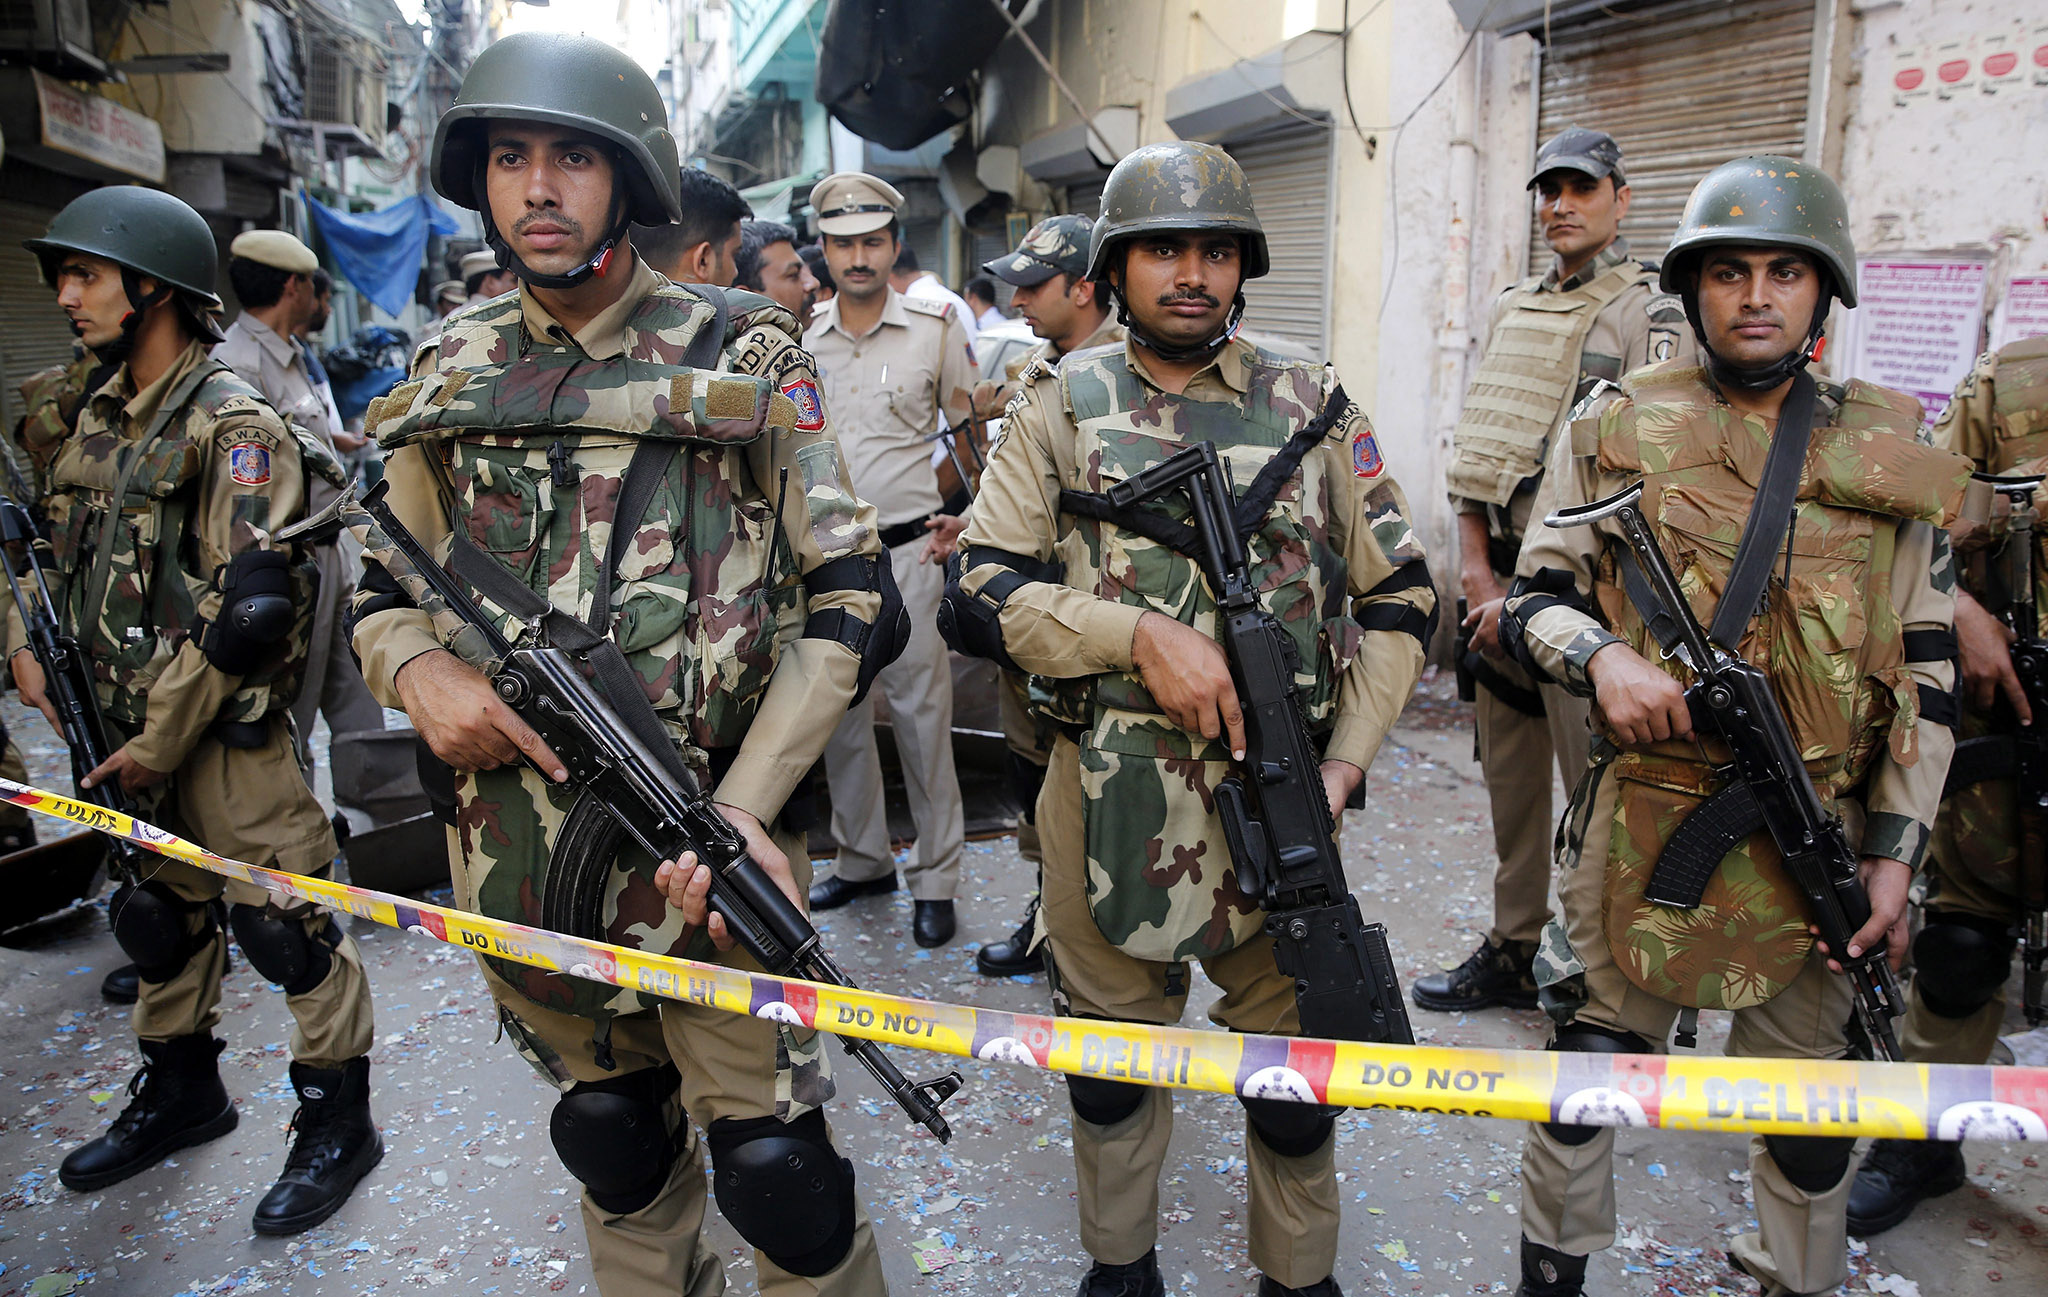 Indian Police officials guard the spot after an explosion in a market in Chandni Chowk area in New Delhi, India, 25 October 2016. Reports state one person was killed and five others injured in the explosion. Initial investigation revealed the explosion could be due to materials used in crackers that were possibly in a bag with the man who died in the incident.  EPA/RAJAT GUPTA